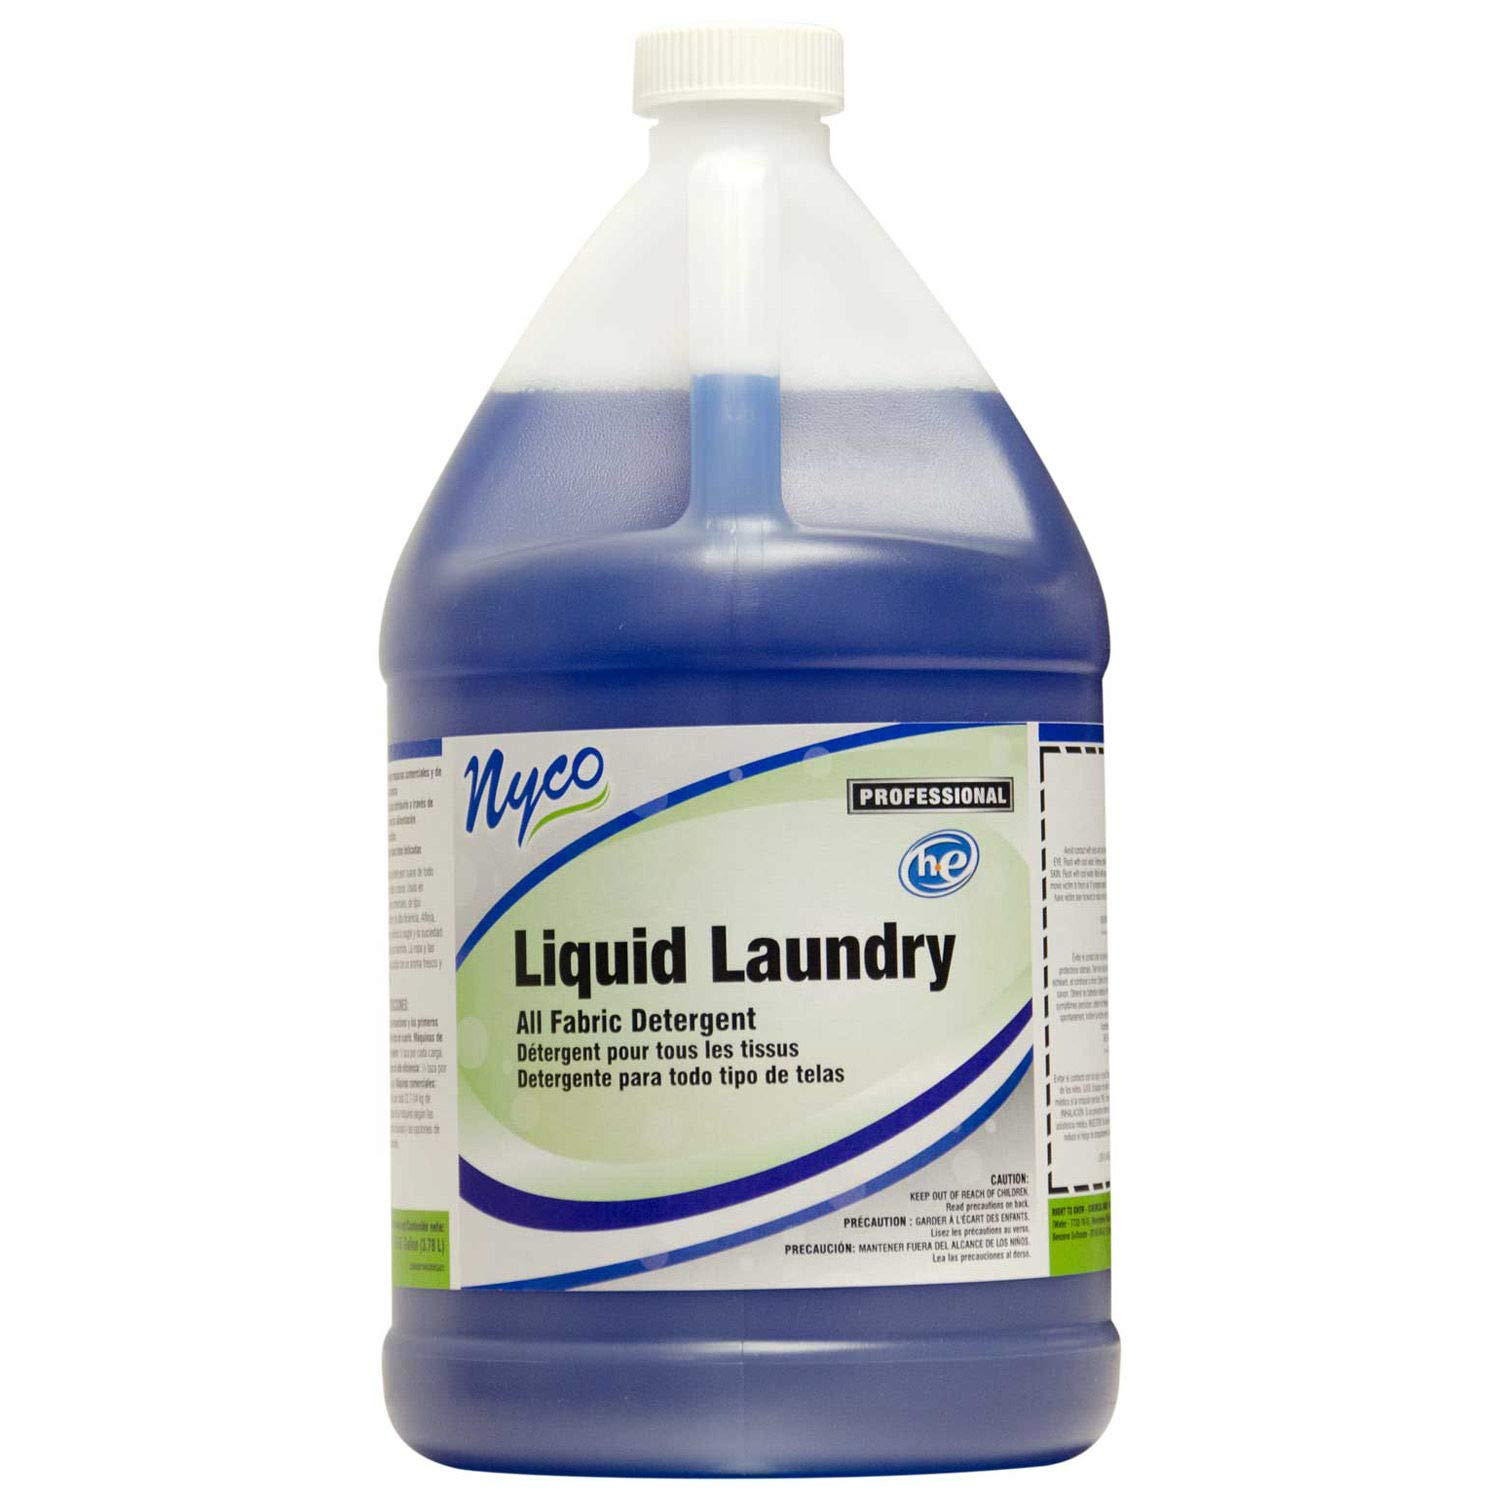 Nyco Products NL929-G4 Liquid Laundry Detergent, 1-Gallon Bottle (Case of 4)